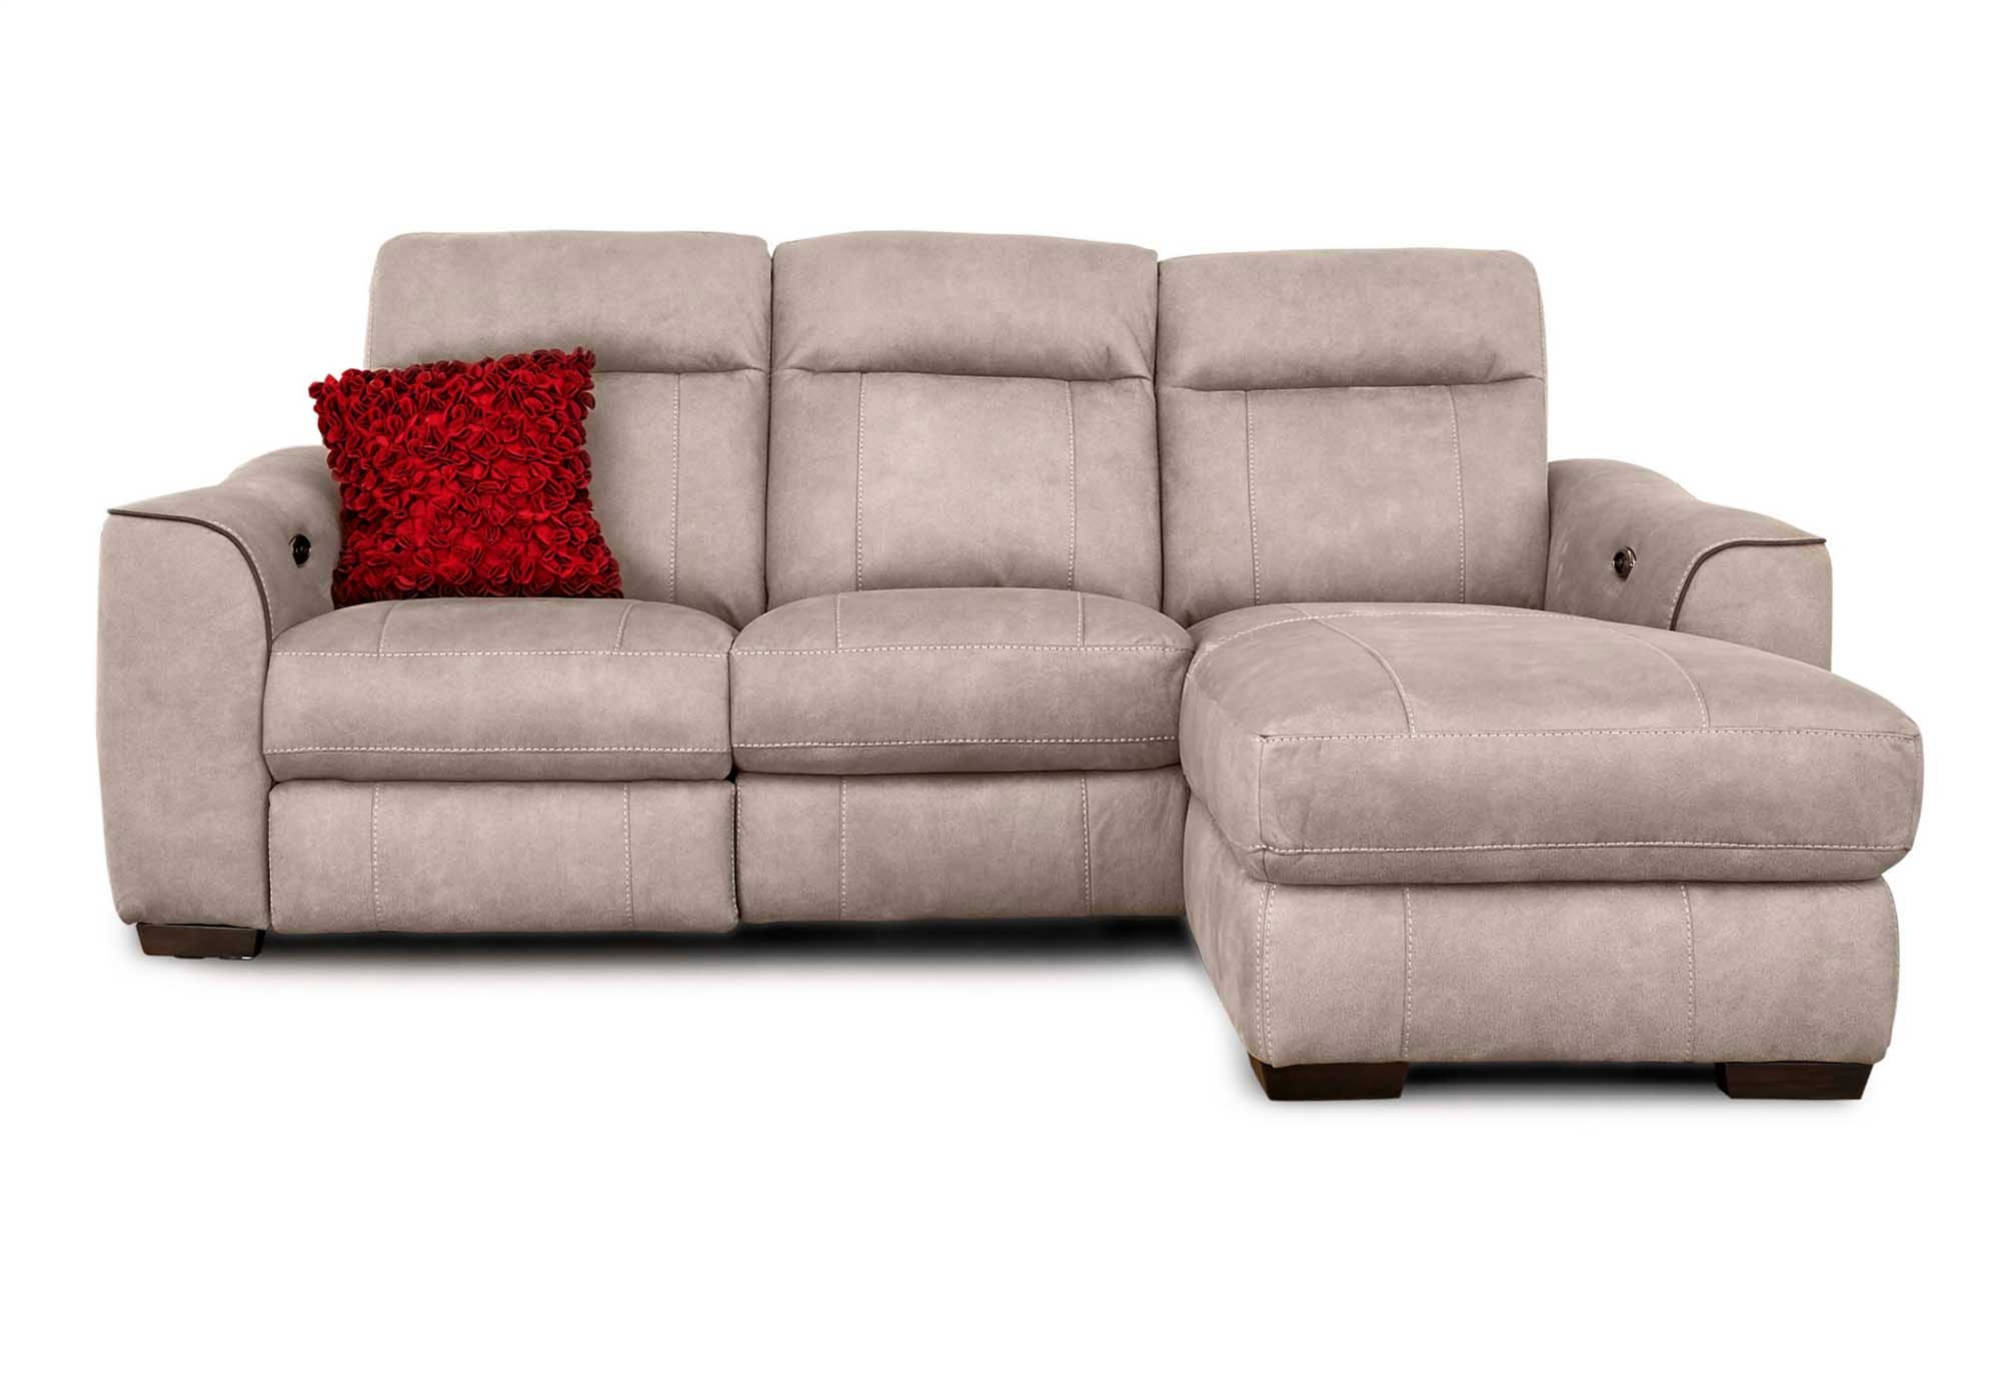 Furniture village paloma sofa reviews refil sofa for Furniture village sofa